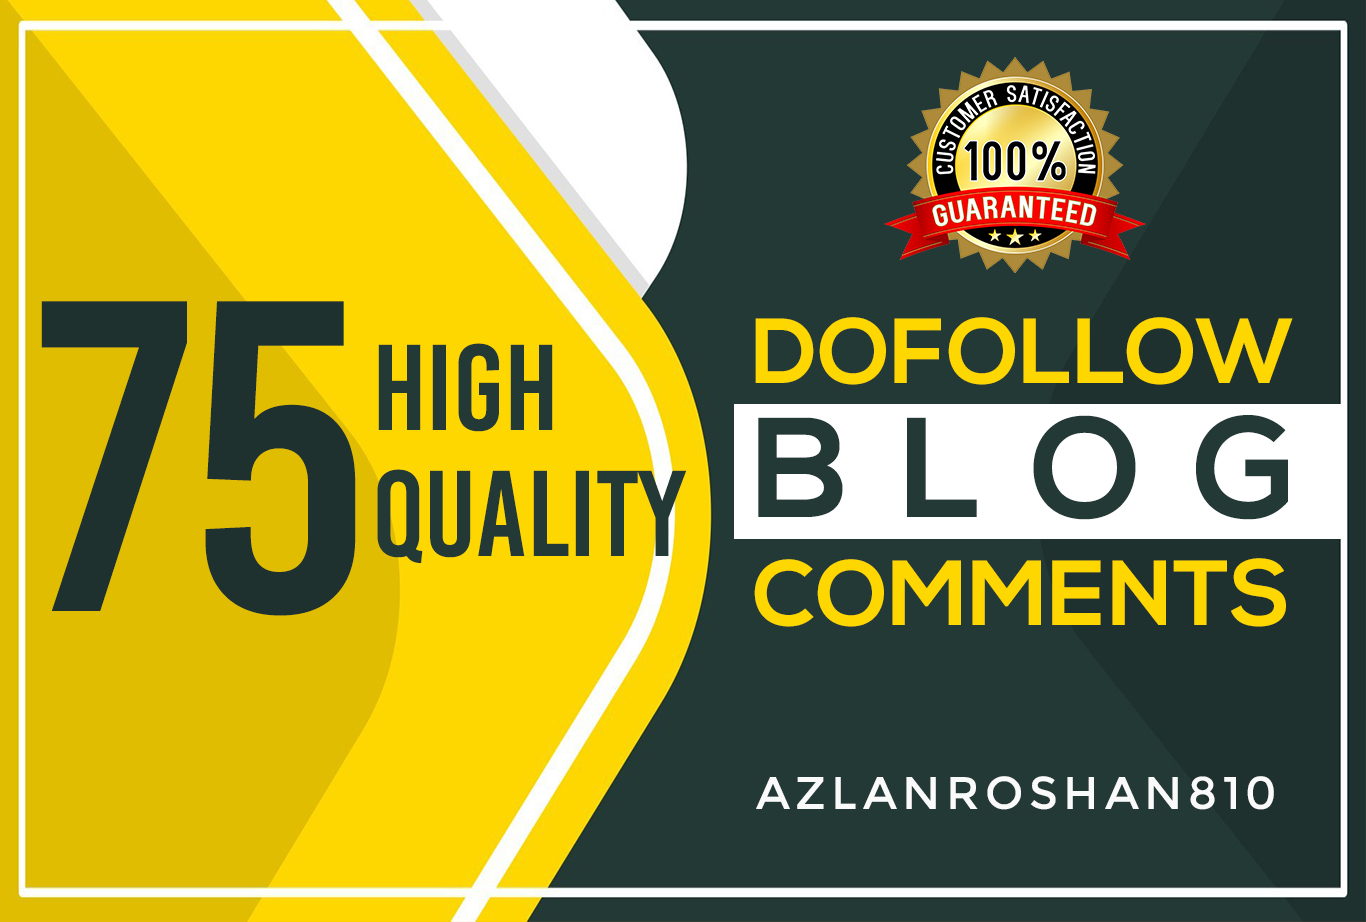 75 High Quality DO-Follow Blog Comments